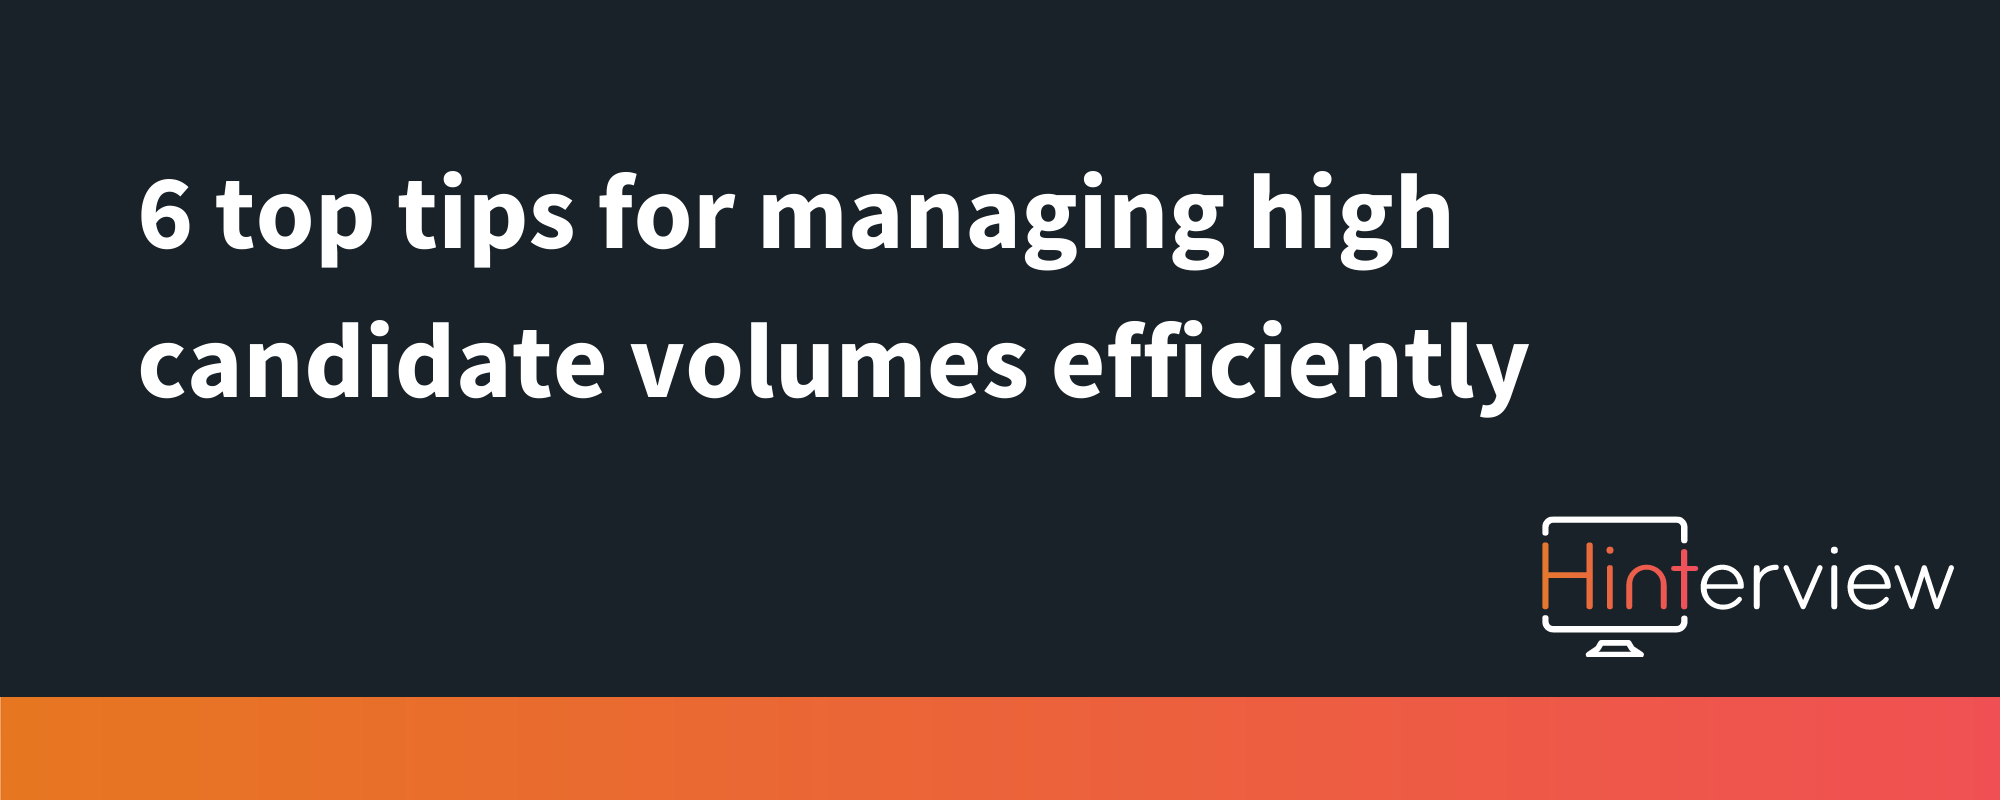 6 top tips for managing high candidate volumes efficiently